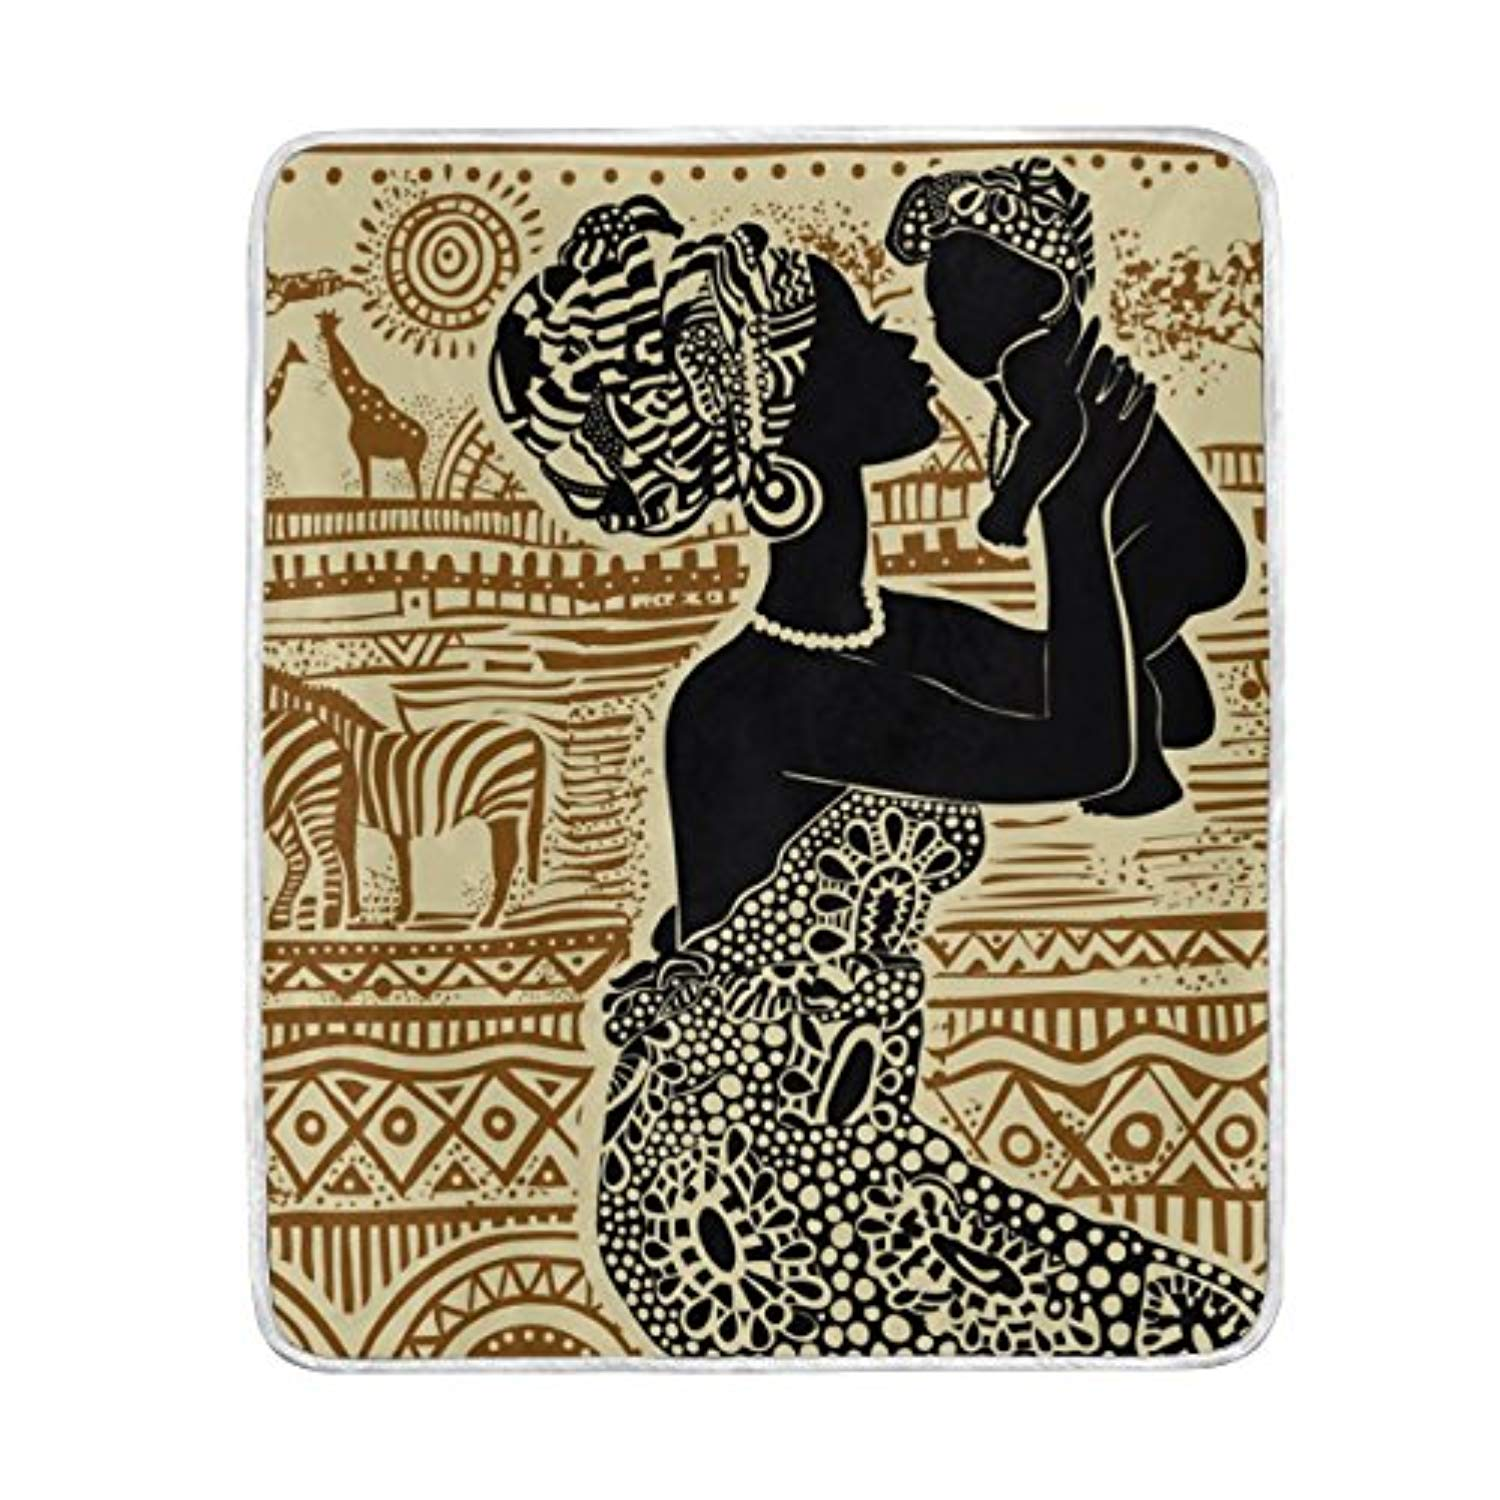 Cooper girl African Woman And Her Baby Throw Blanket Soft Warm Bed Couch Blanket Lightweight Polyester Microfiber 50x60 Inch - Ufumbuzi - Home